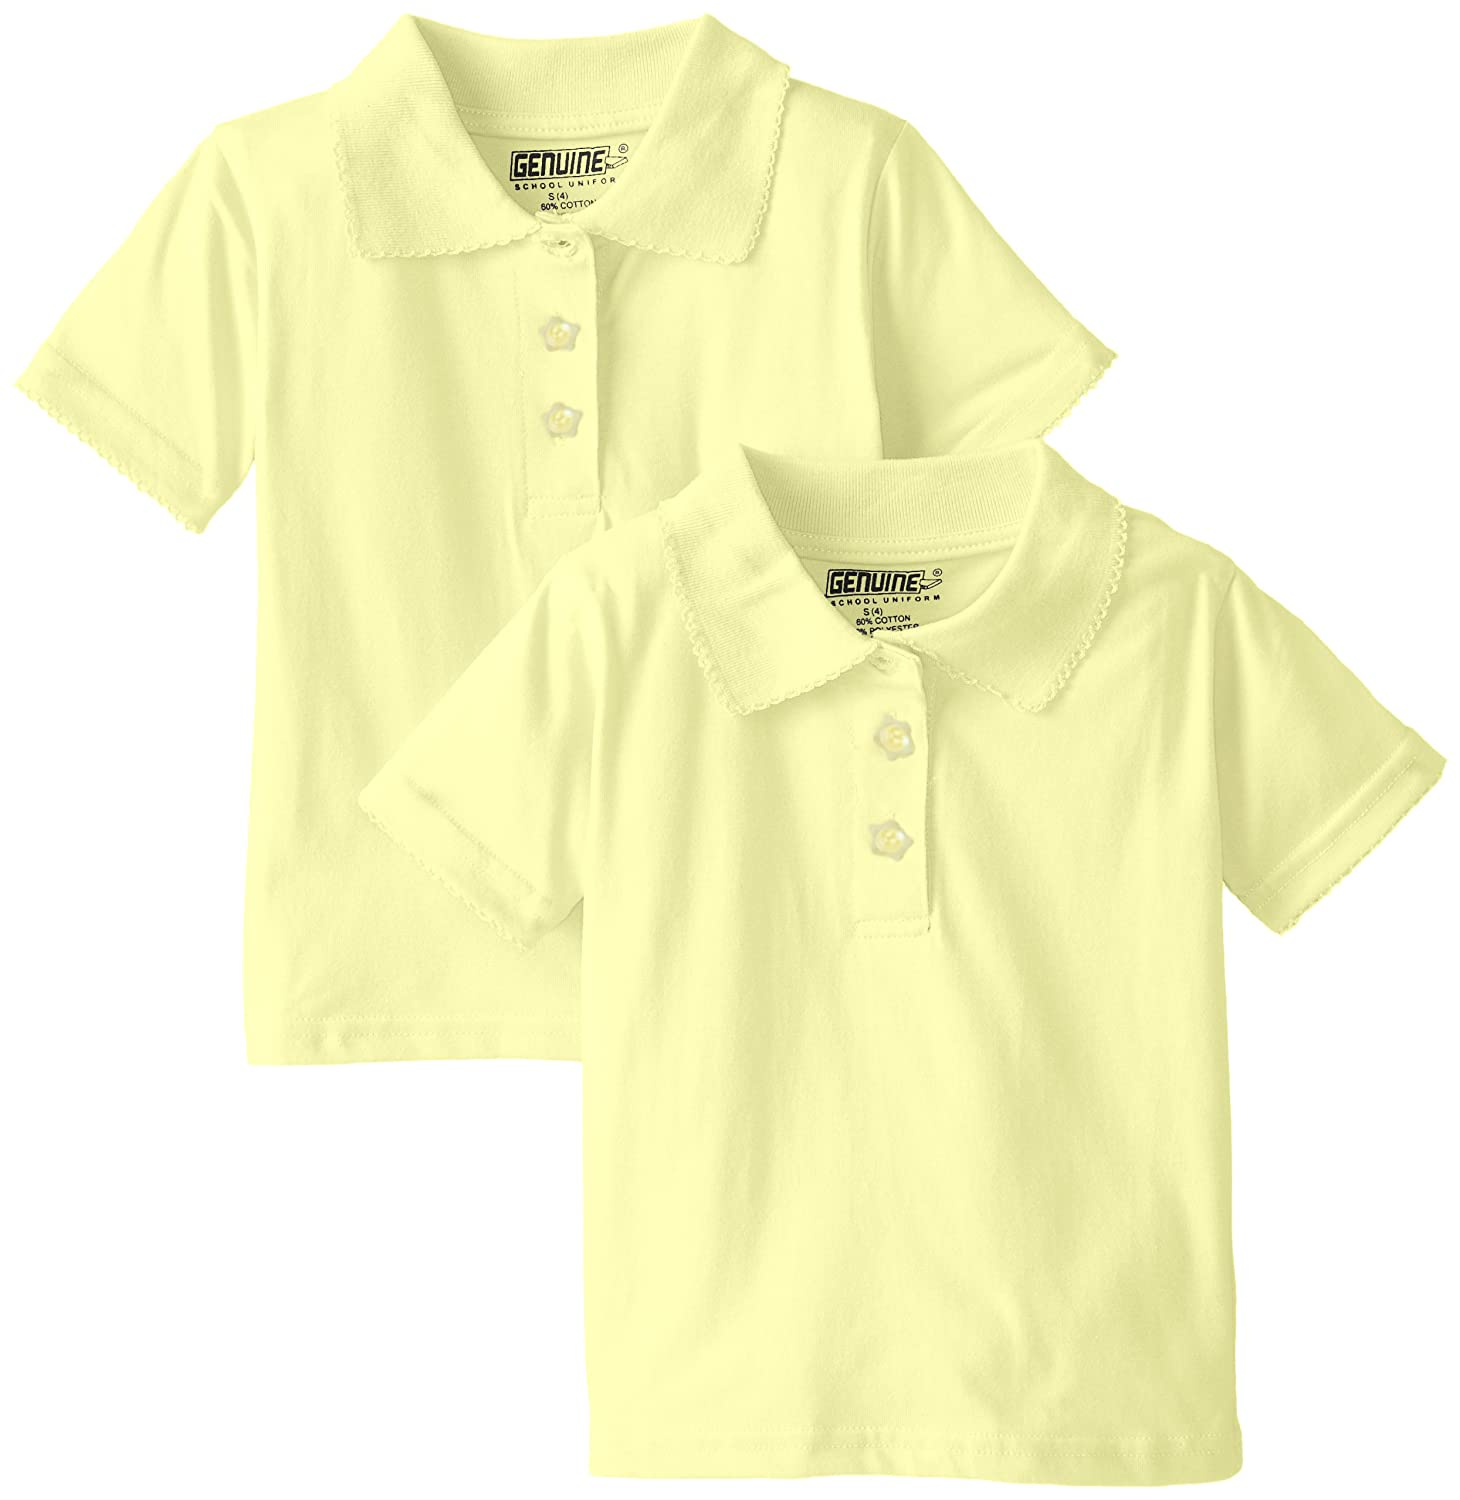 55926b51f Amazon.com  Genuine Girls  2 Pack Polo Shirt (More Styles Available)   Clothing